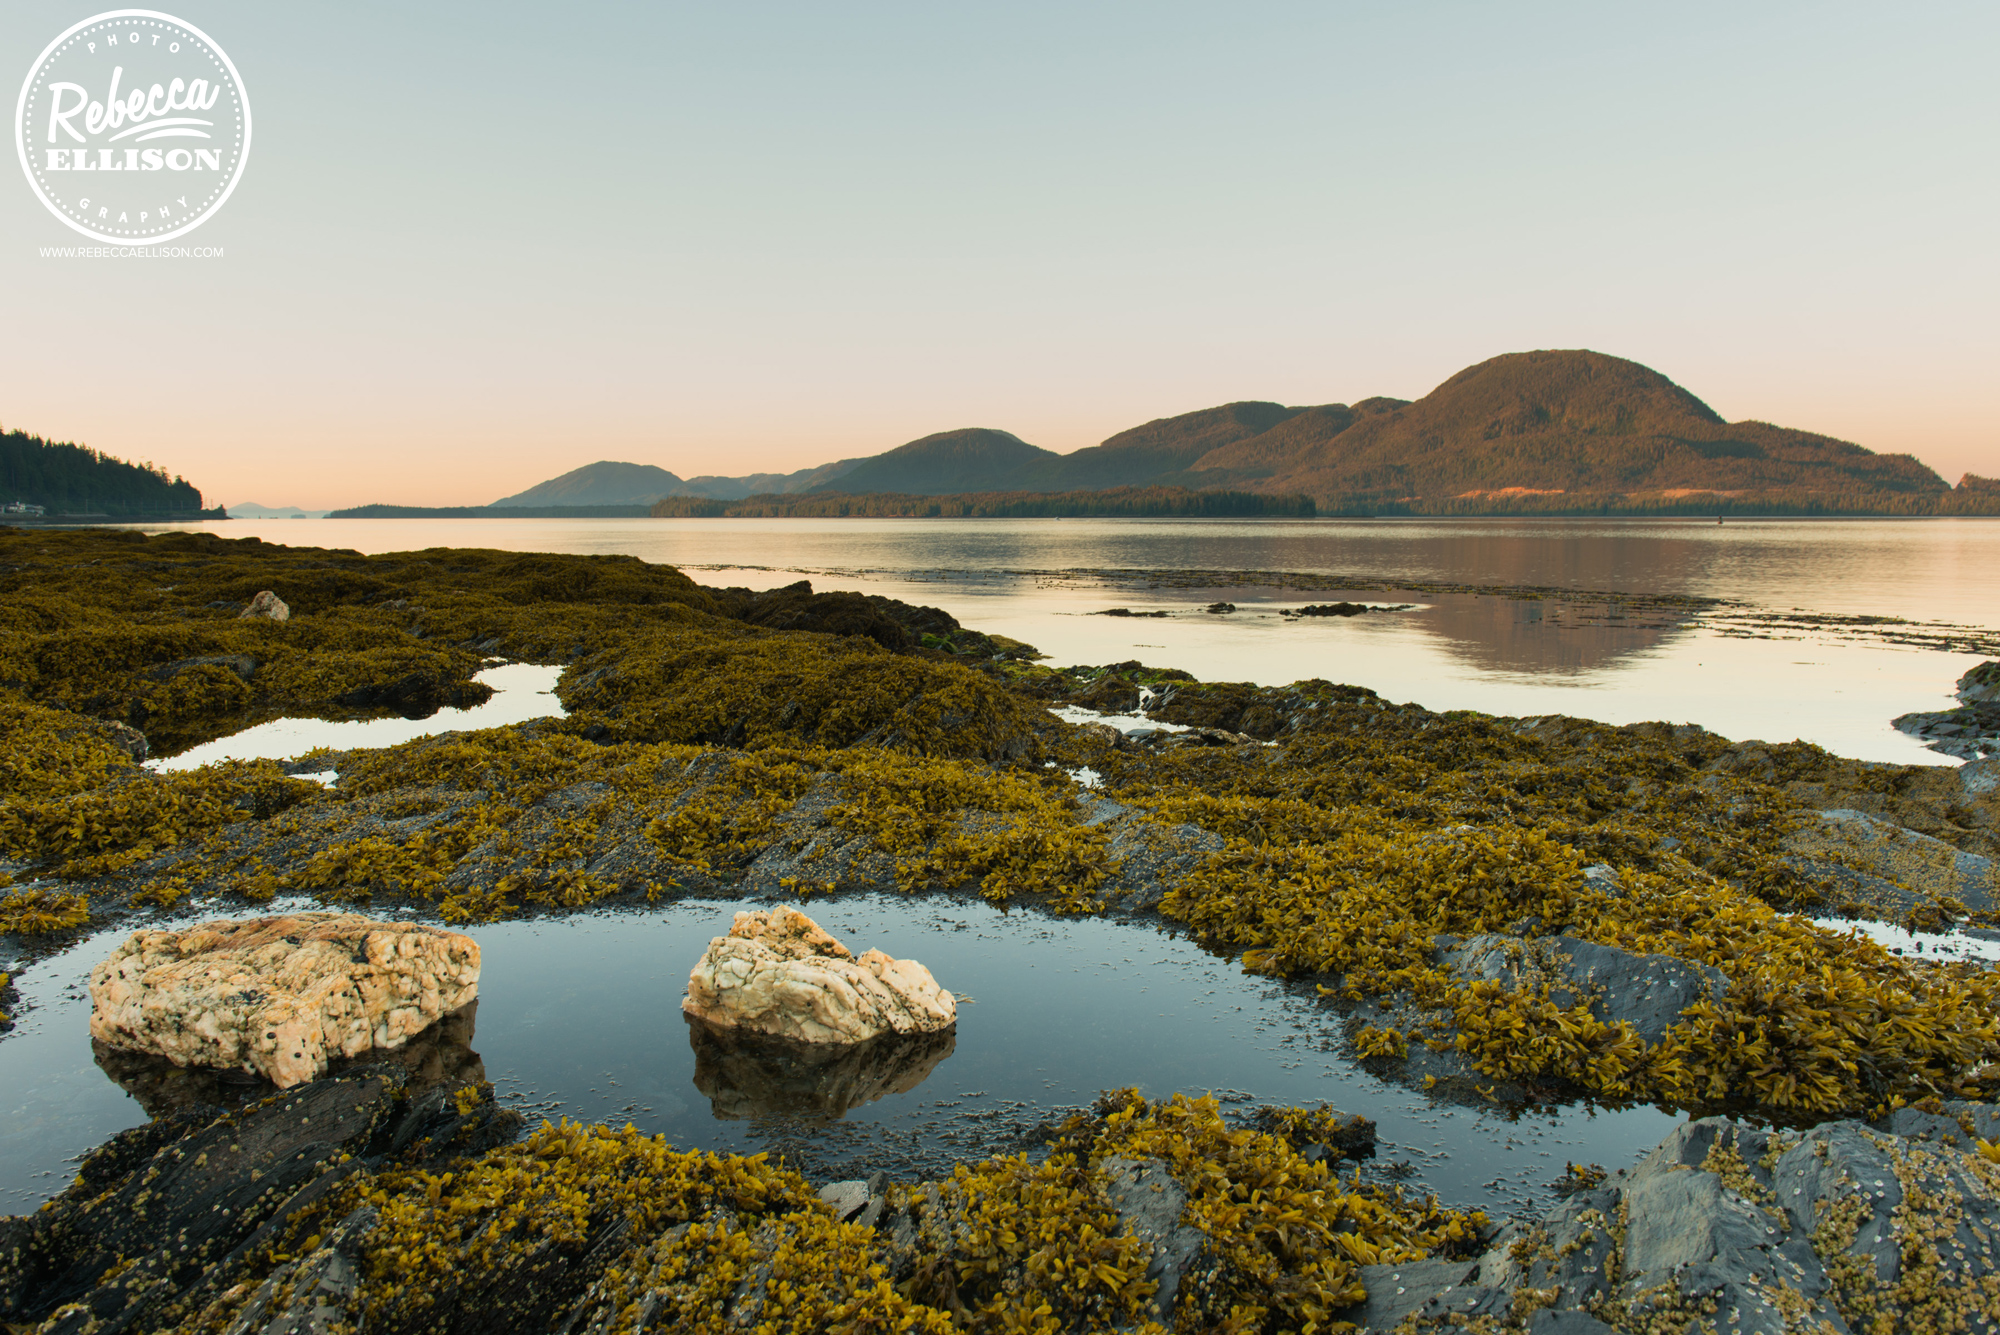 Tide pools at sunrise near Ketchikan Alaska photographed by Rebecca Ellison Photography